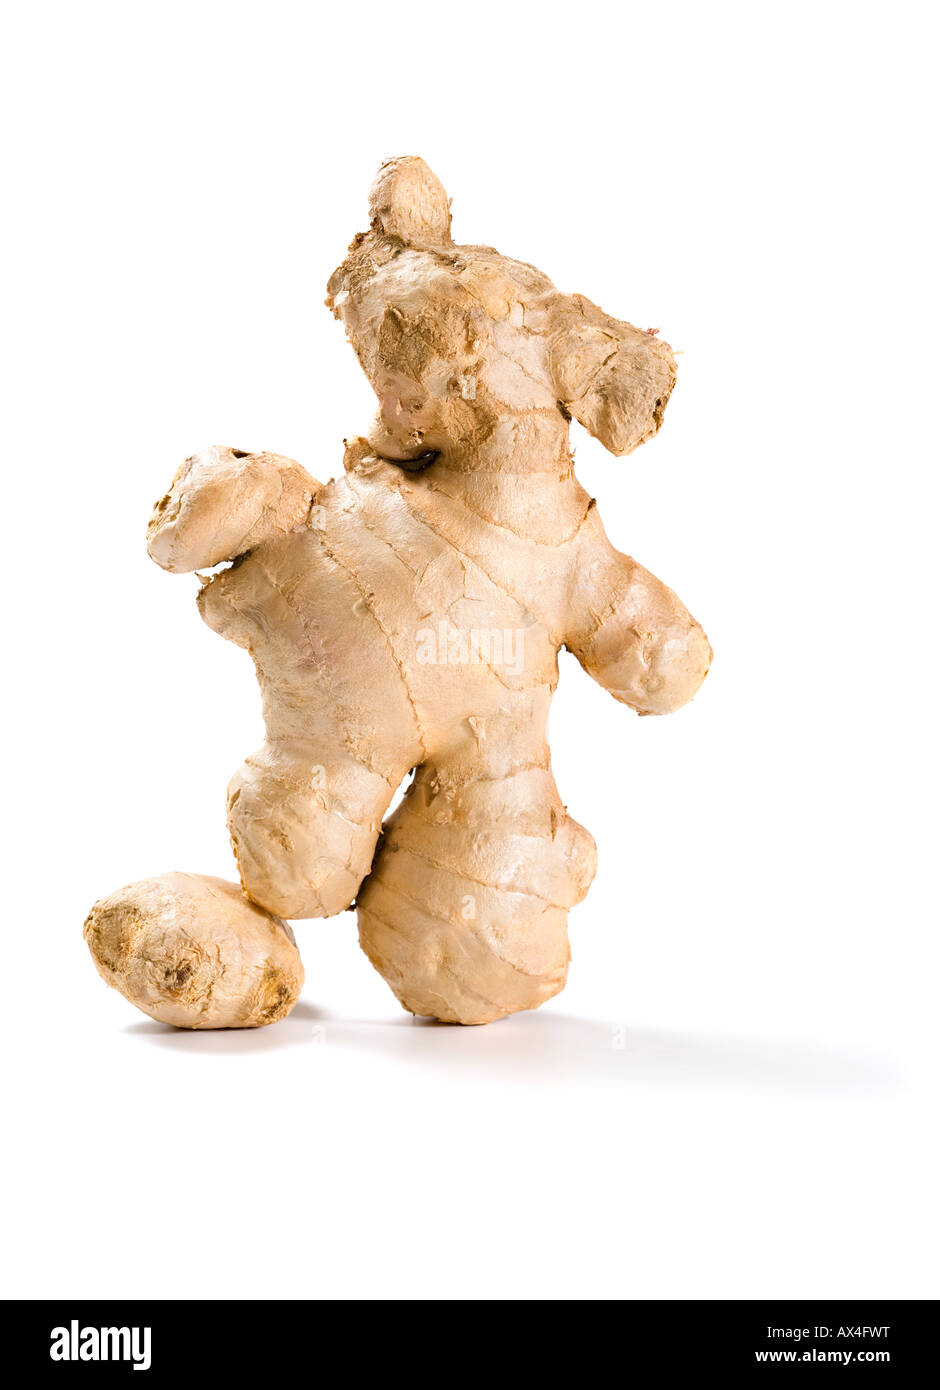 ginger root shaped like a soccer player with ball isolated on white background - Stock Image